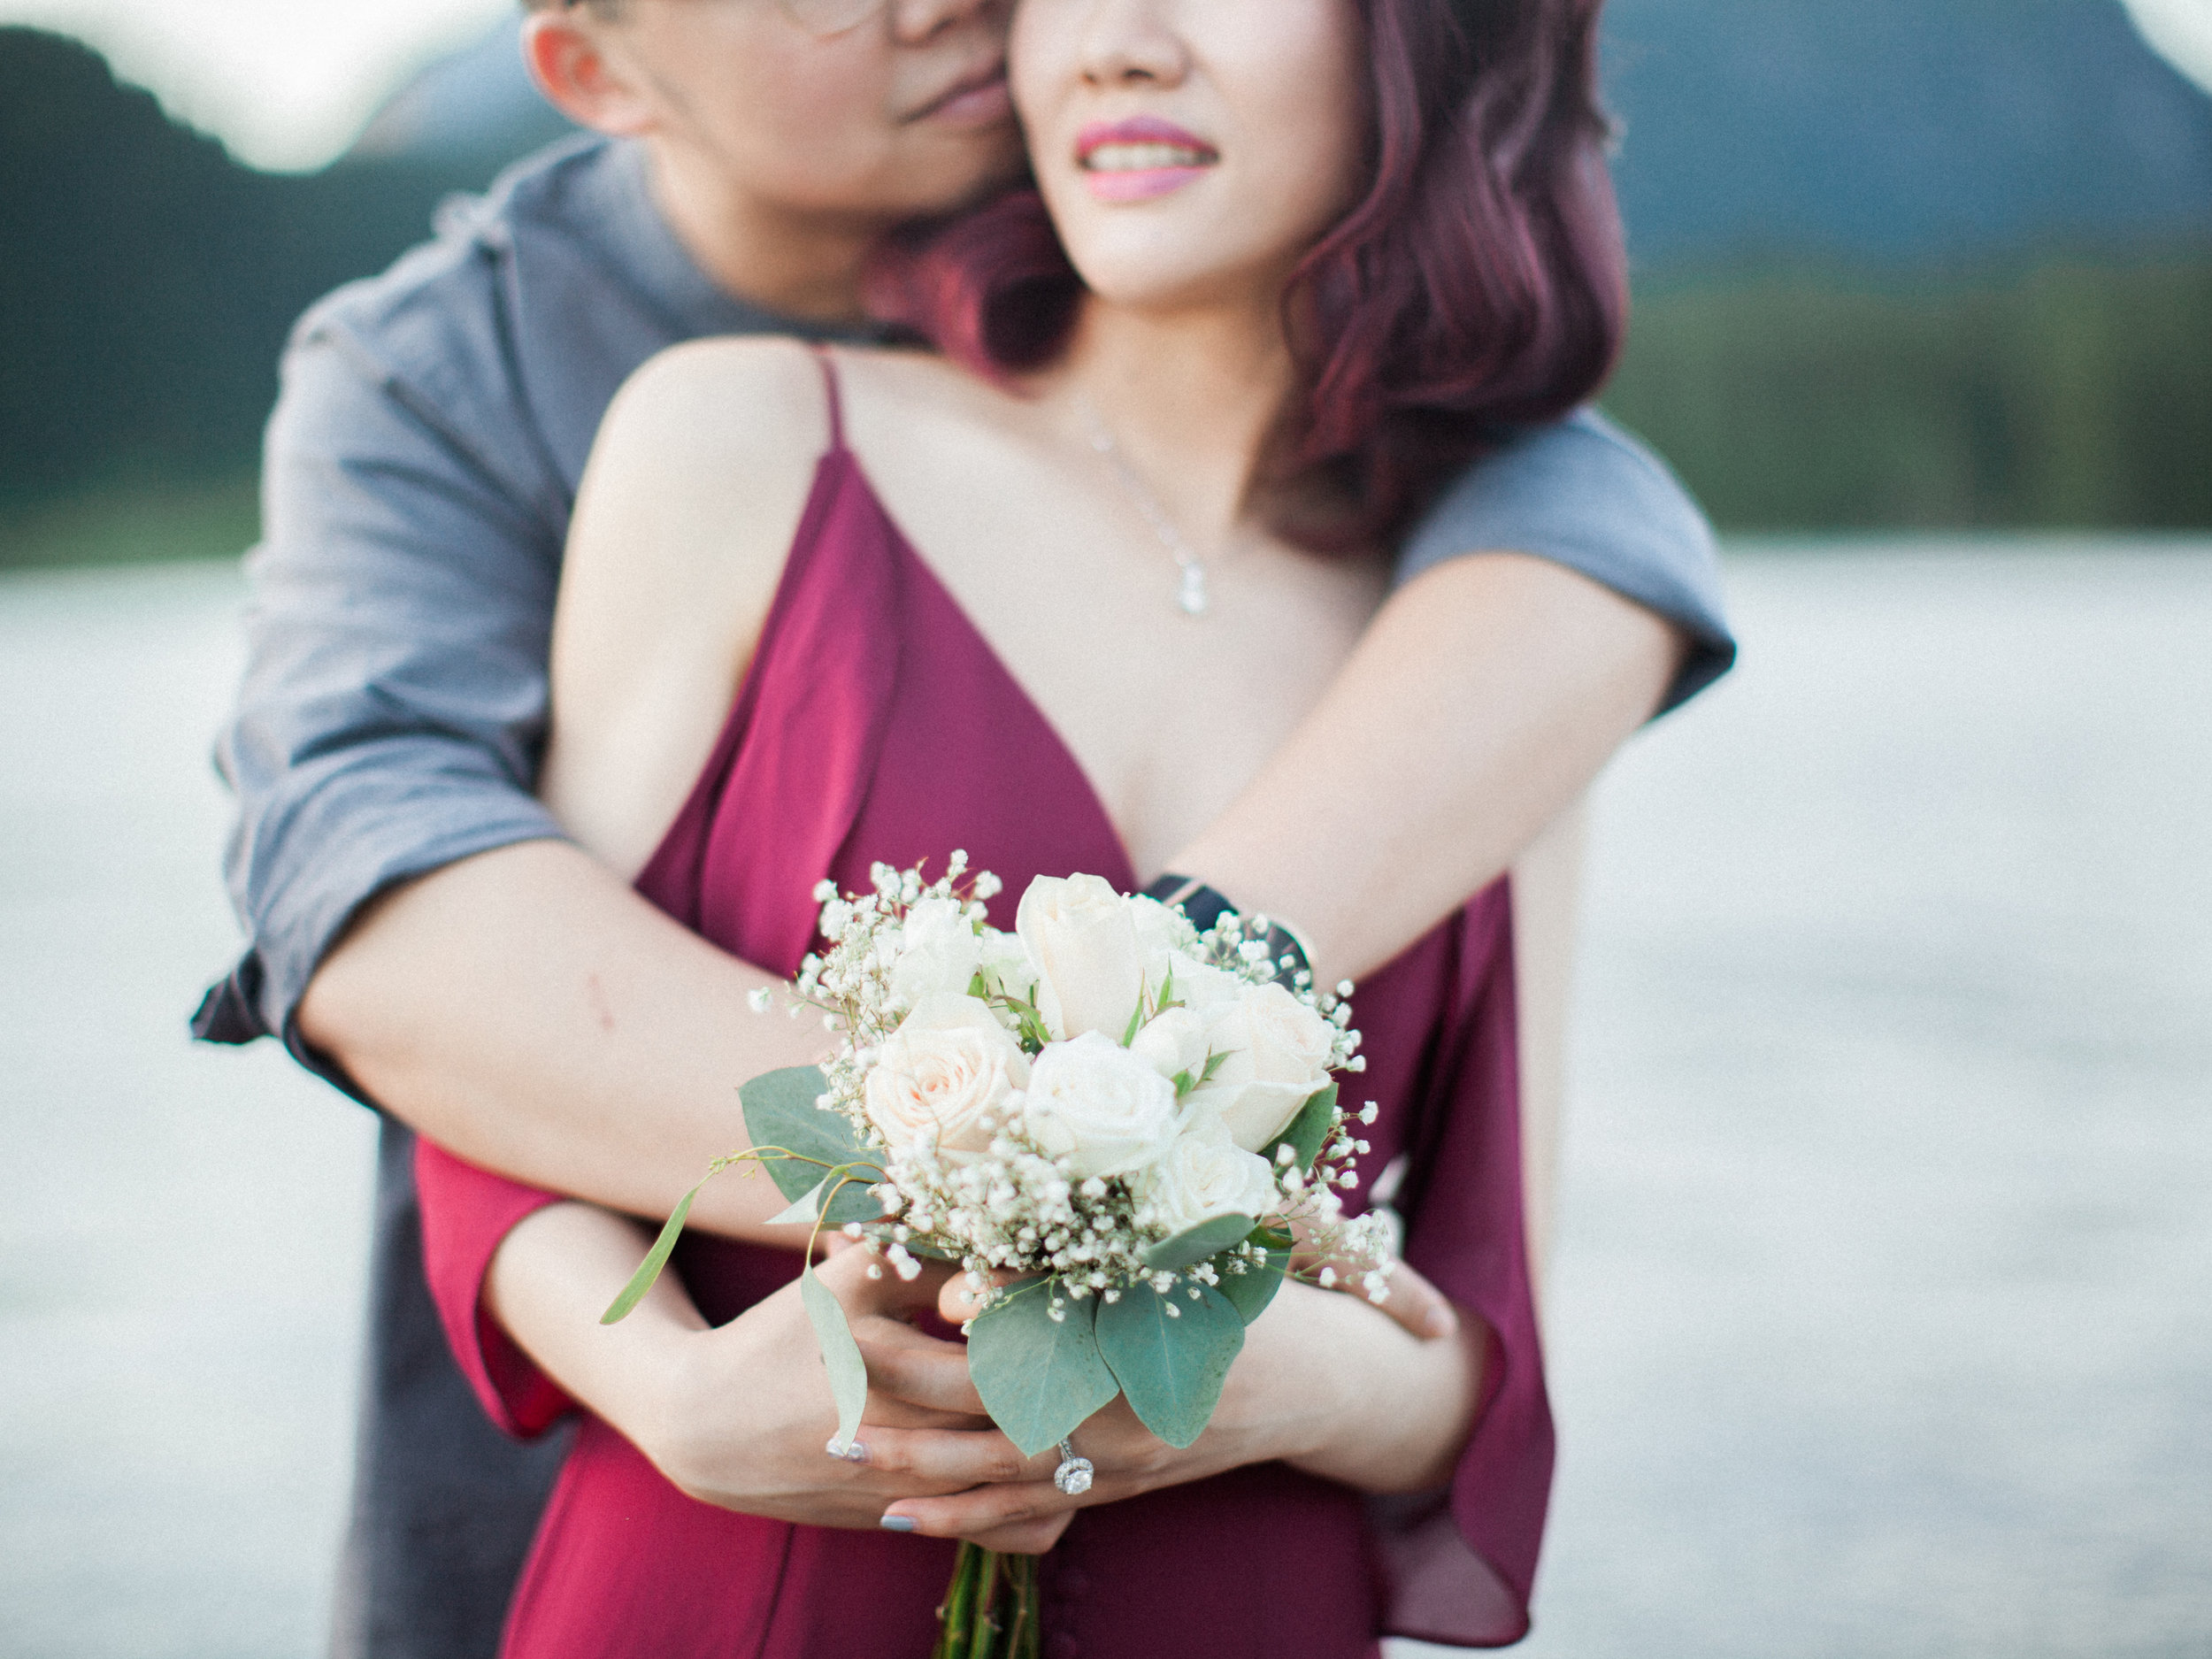 20170528Maple_Ridge_Engagement_Mary_Marco_Prewedding-21 copy.jpg